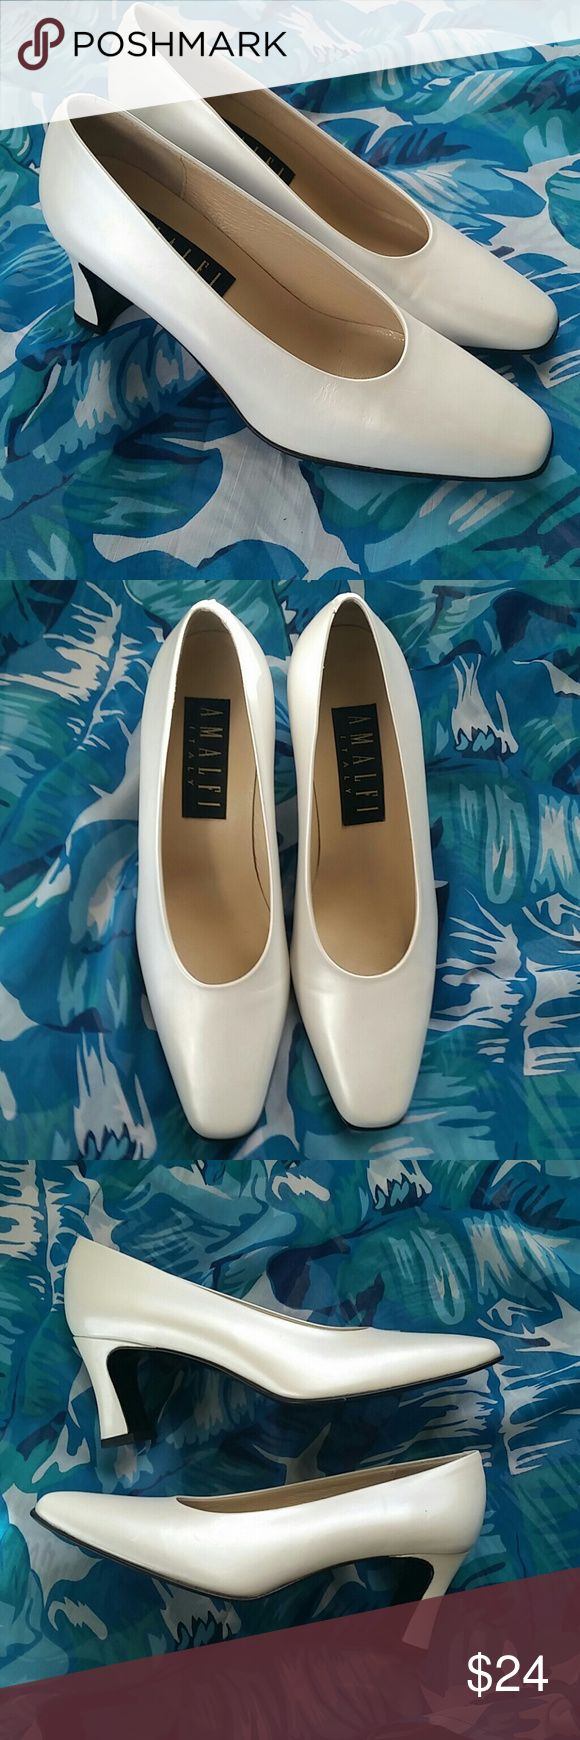 """Amalfi Pearl Leather Pumps Size 6.5B Made in Italy A lovely pair of pearl leather pumps by Amalfi in excellent preowned condition. Size 6.5B. Soles look like new. Made in Italy. 2.75"""" chunky heels. A classic color for Spring and Summer. Amalfi Shoes Heels"""